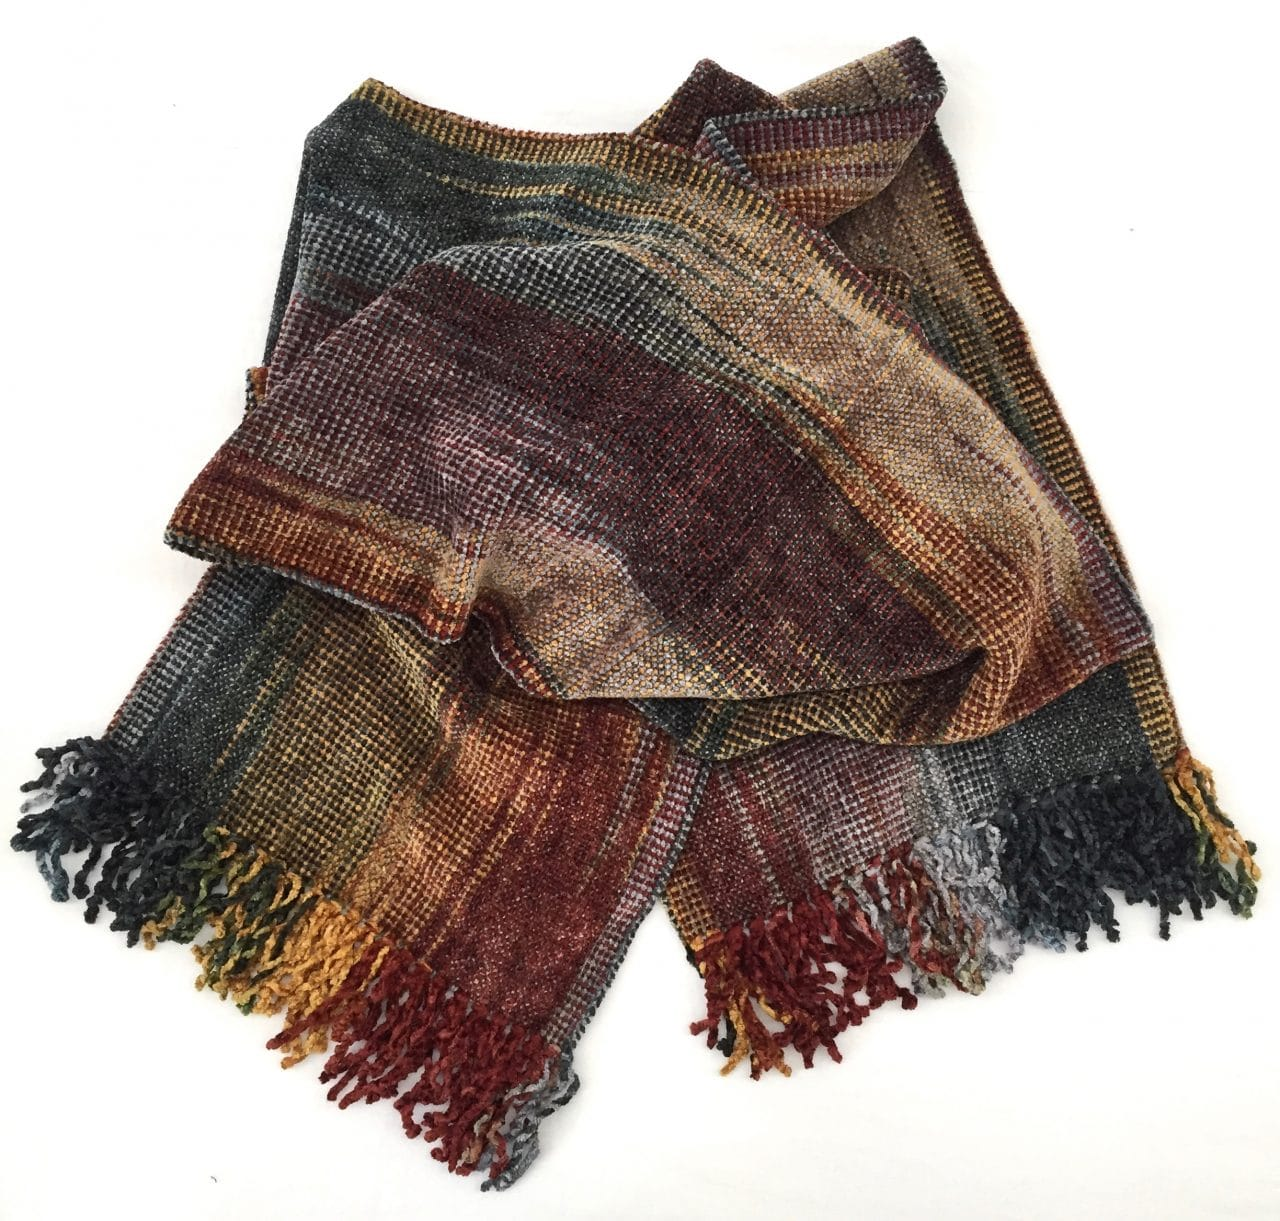 Gold, Burgundy, Black, White, Gray - Bamboo Chenille Handwoven Scarf 8 x 68